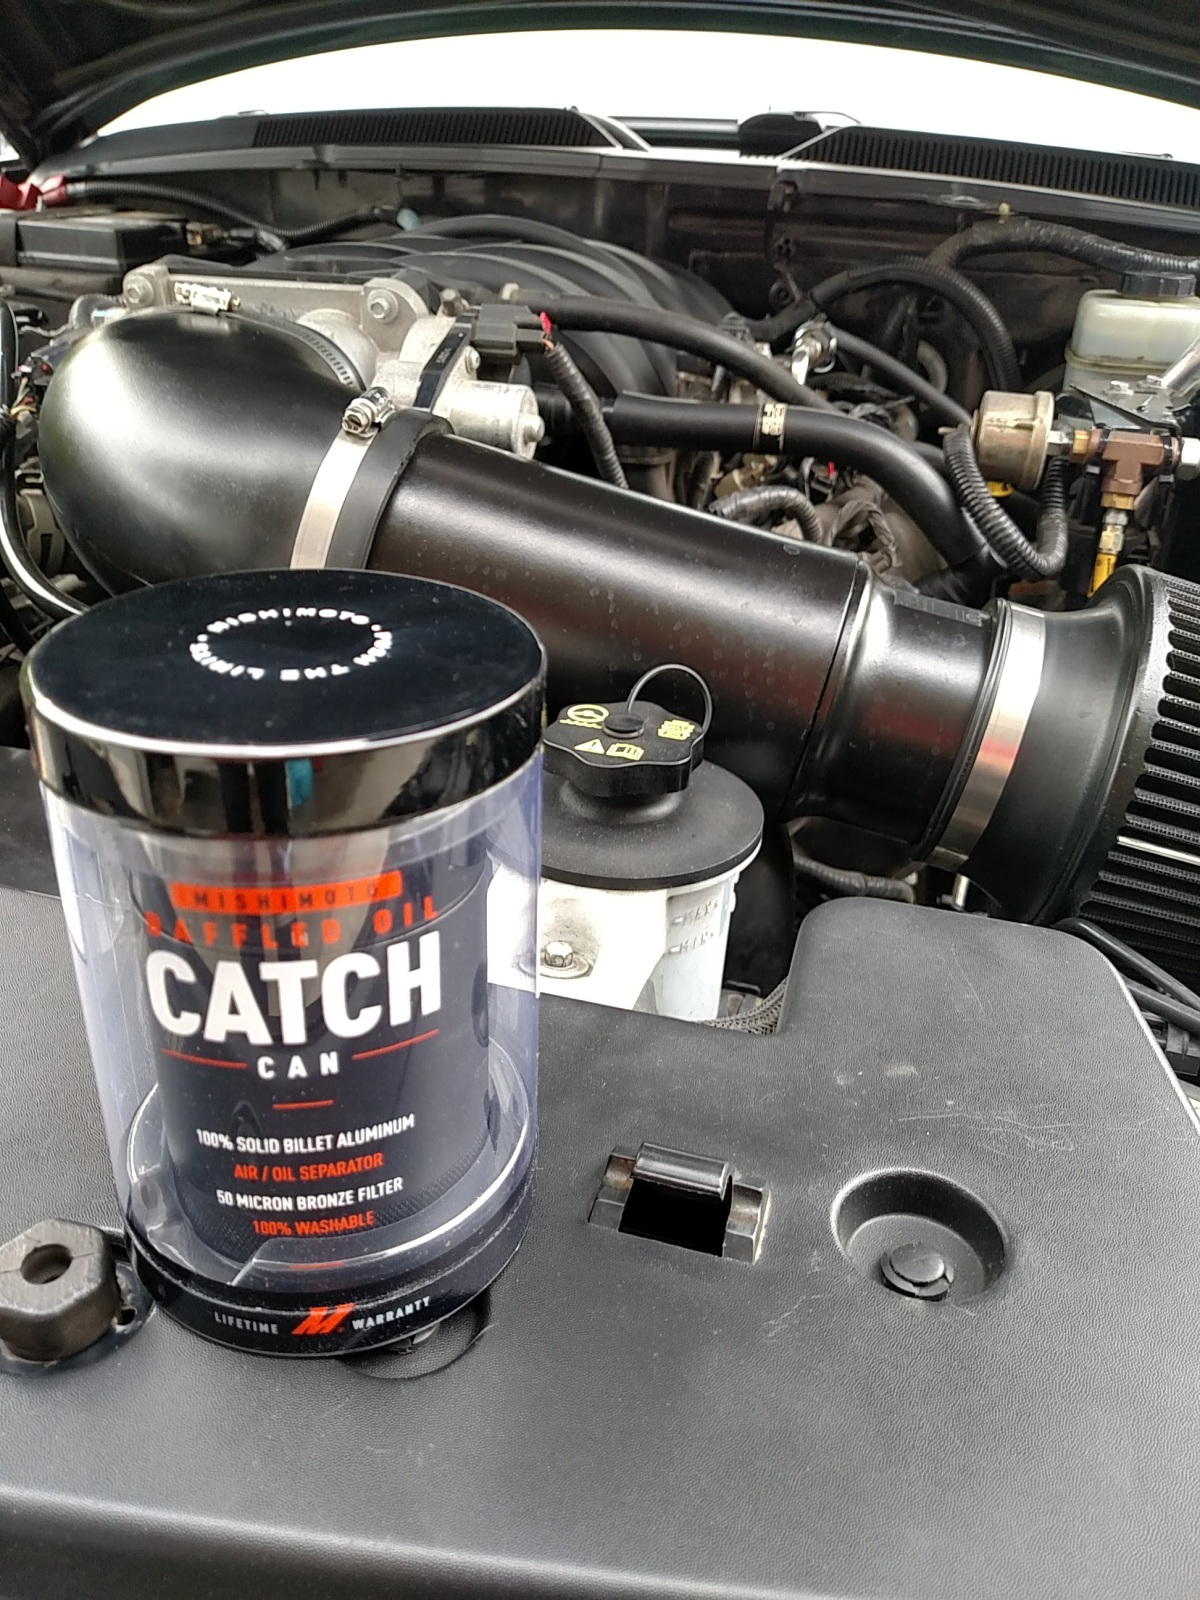 Mishimoto Catch Can Install andReview